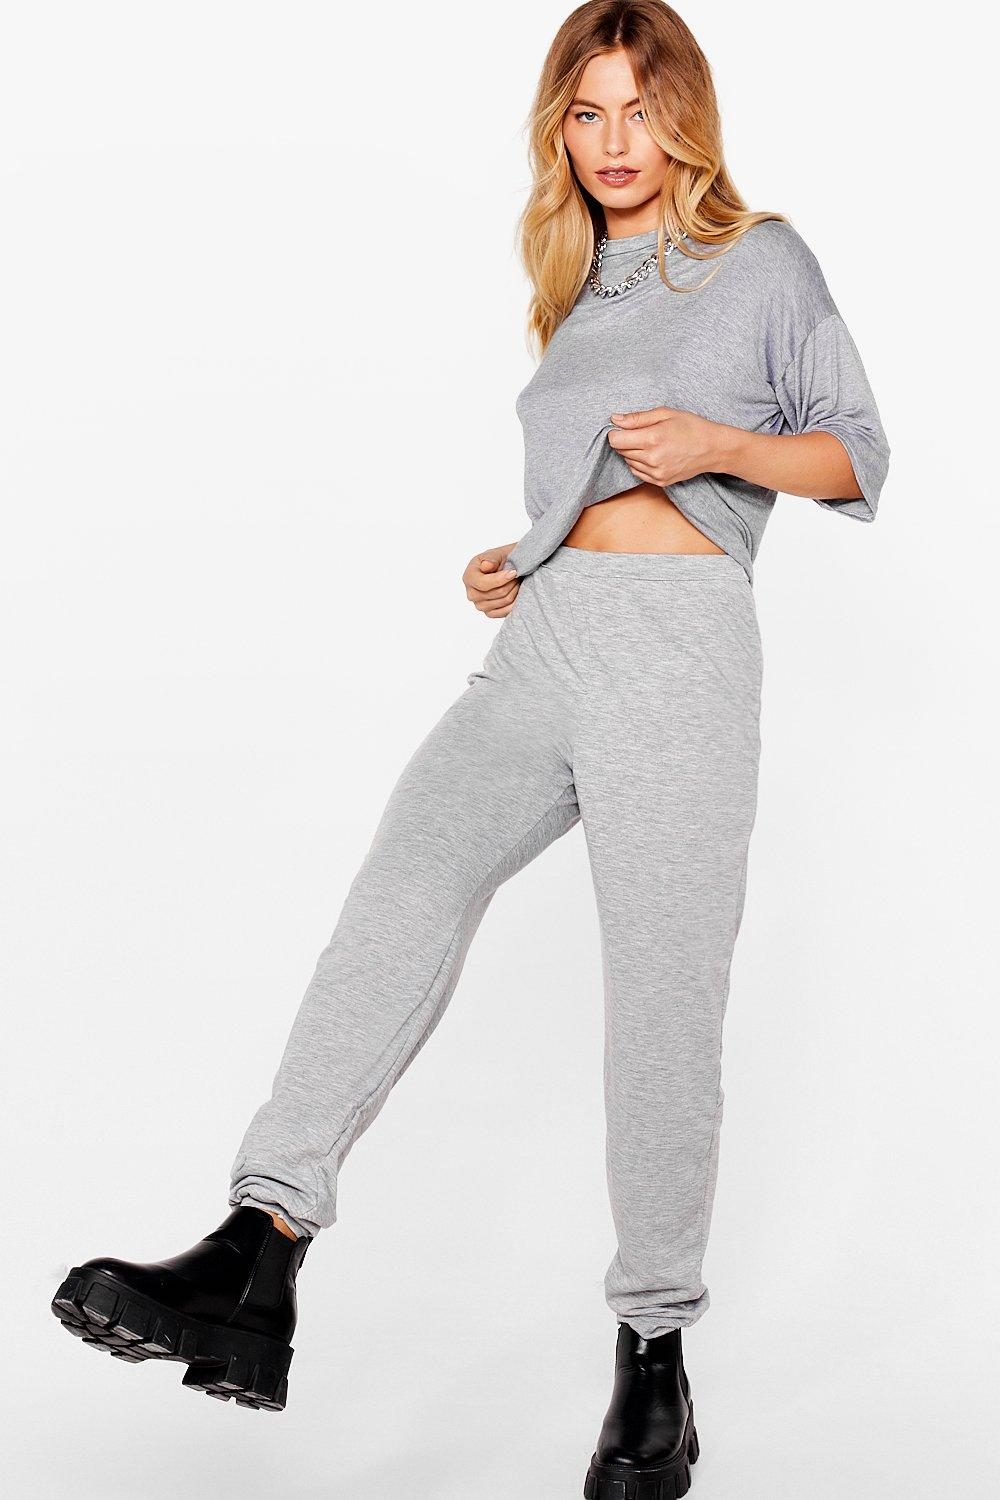 Image of Womens Bring It All Together Tee and Jogger Set - Grey Marl